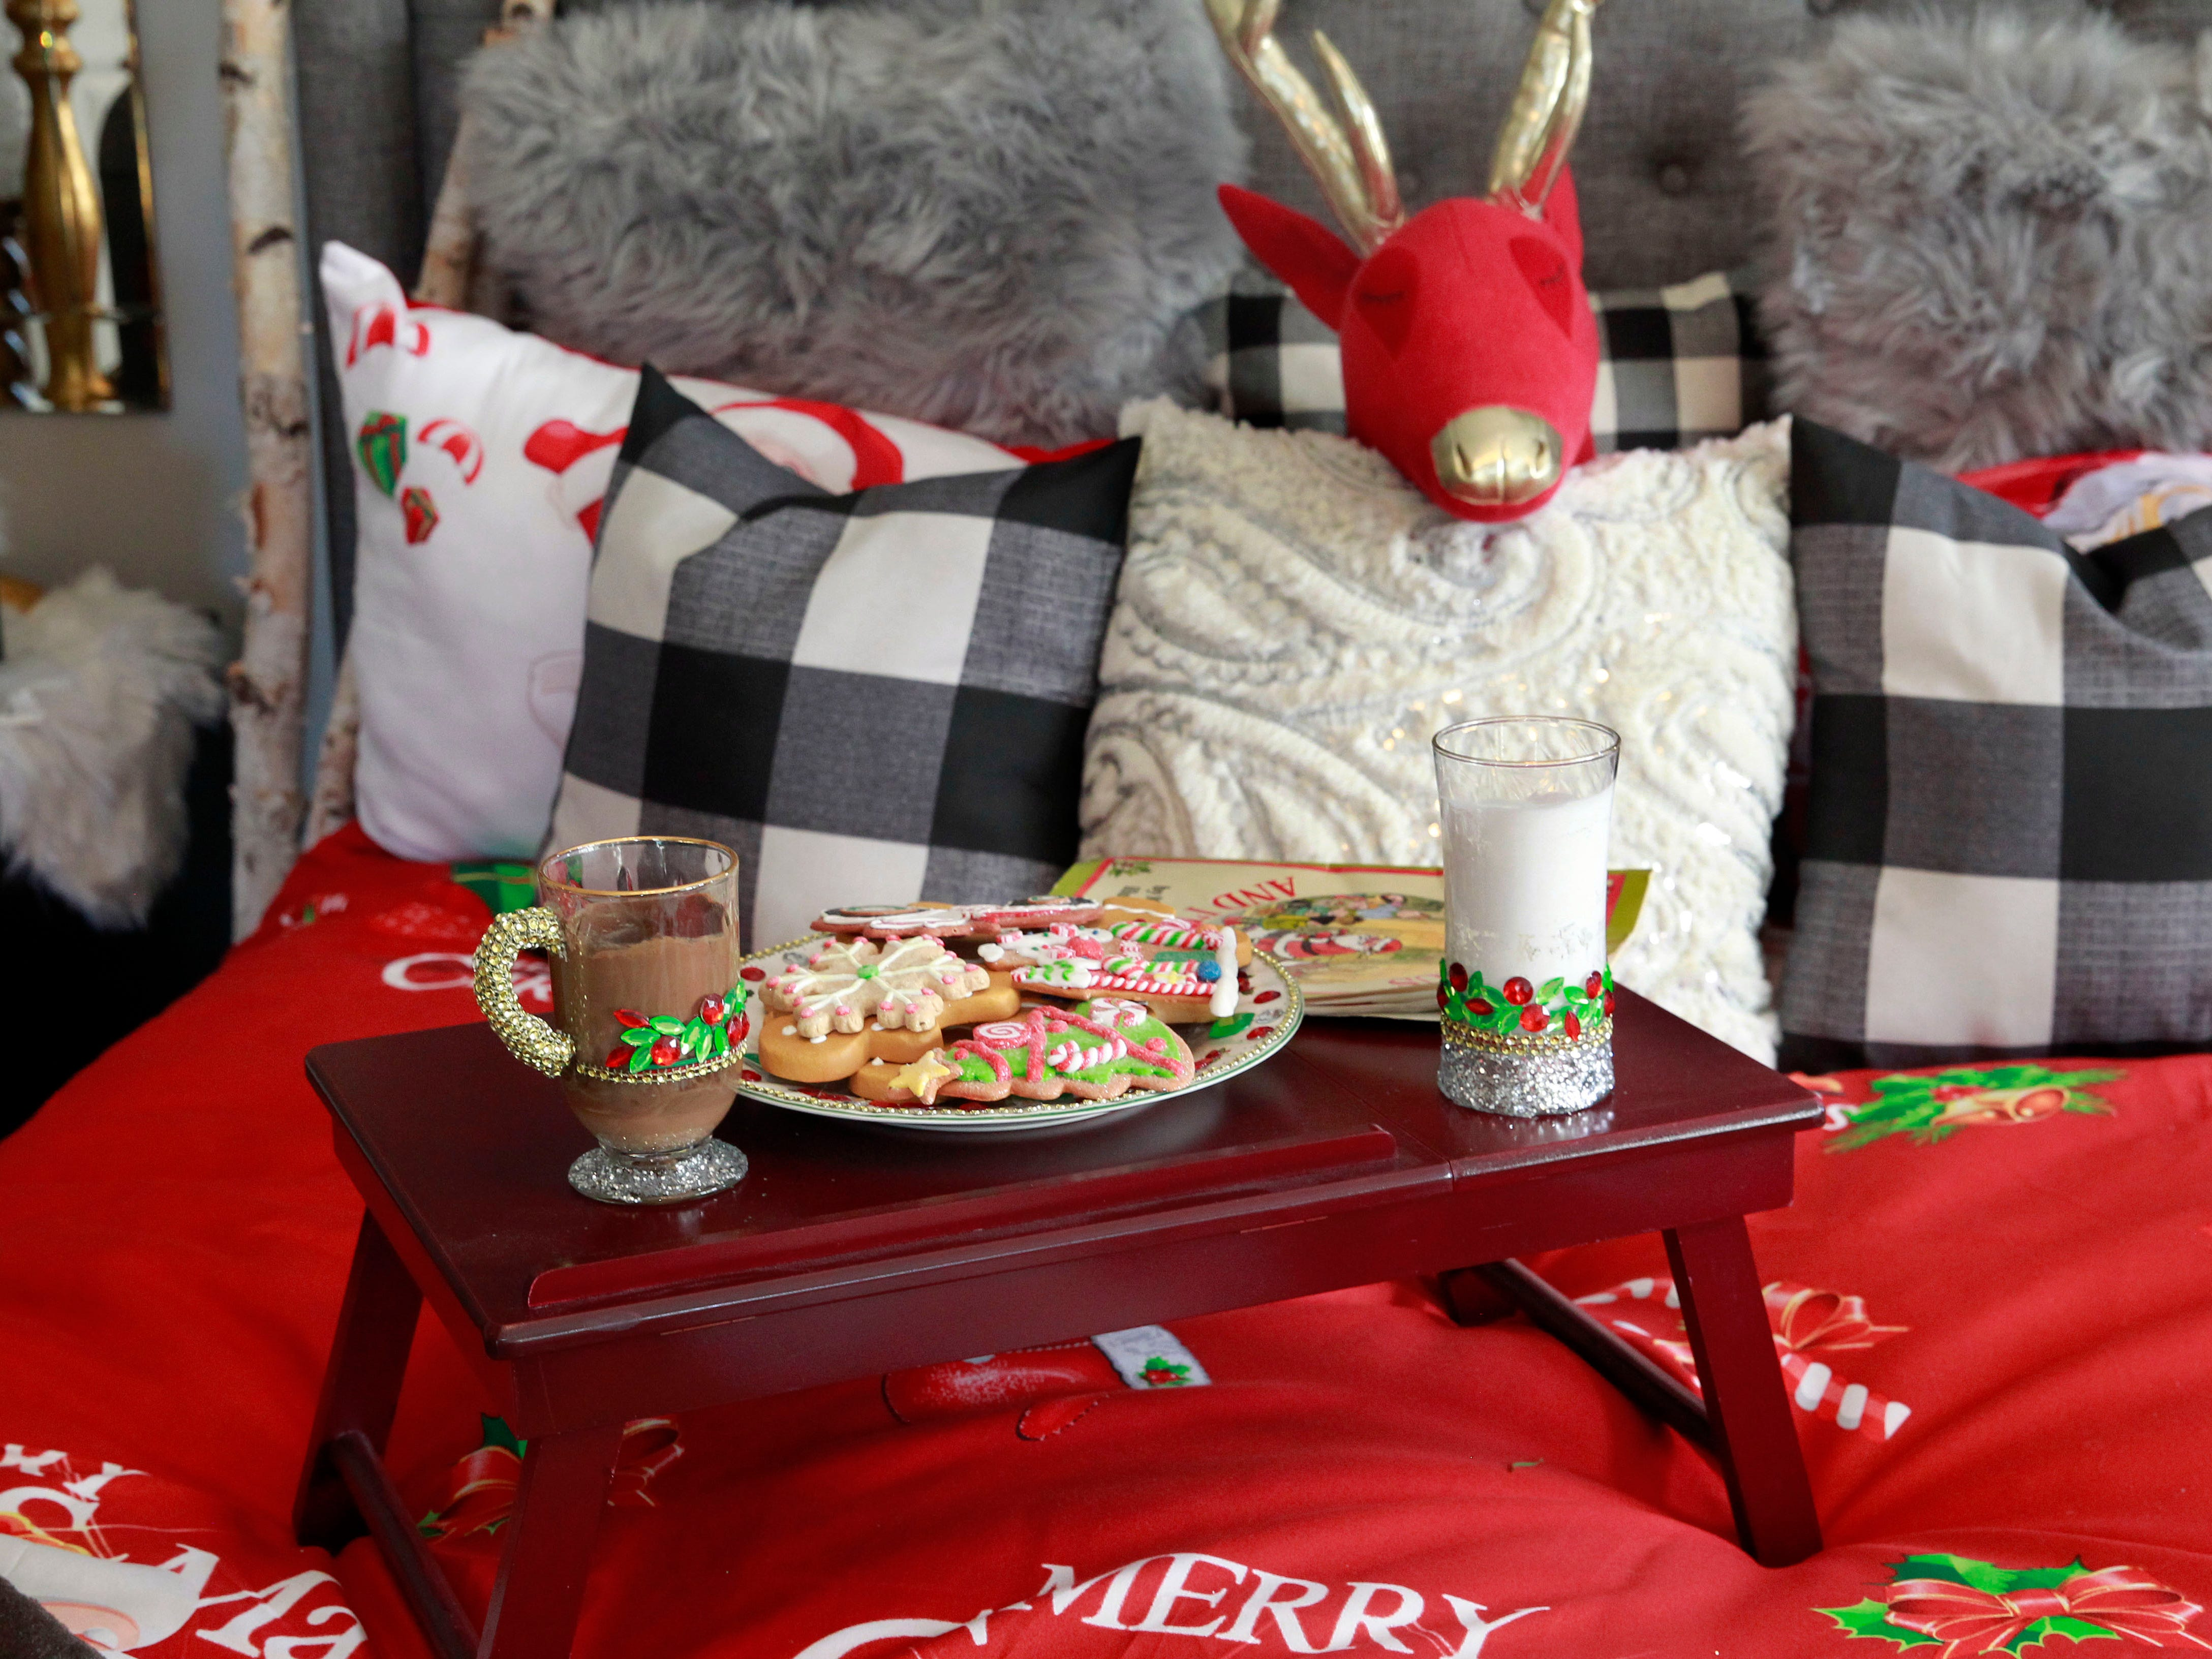 Cookies, cocoa and milk are left for Santa on the bed.